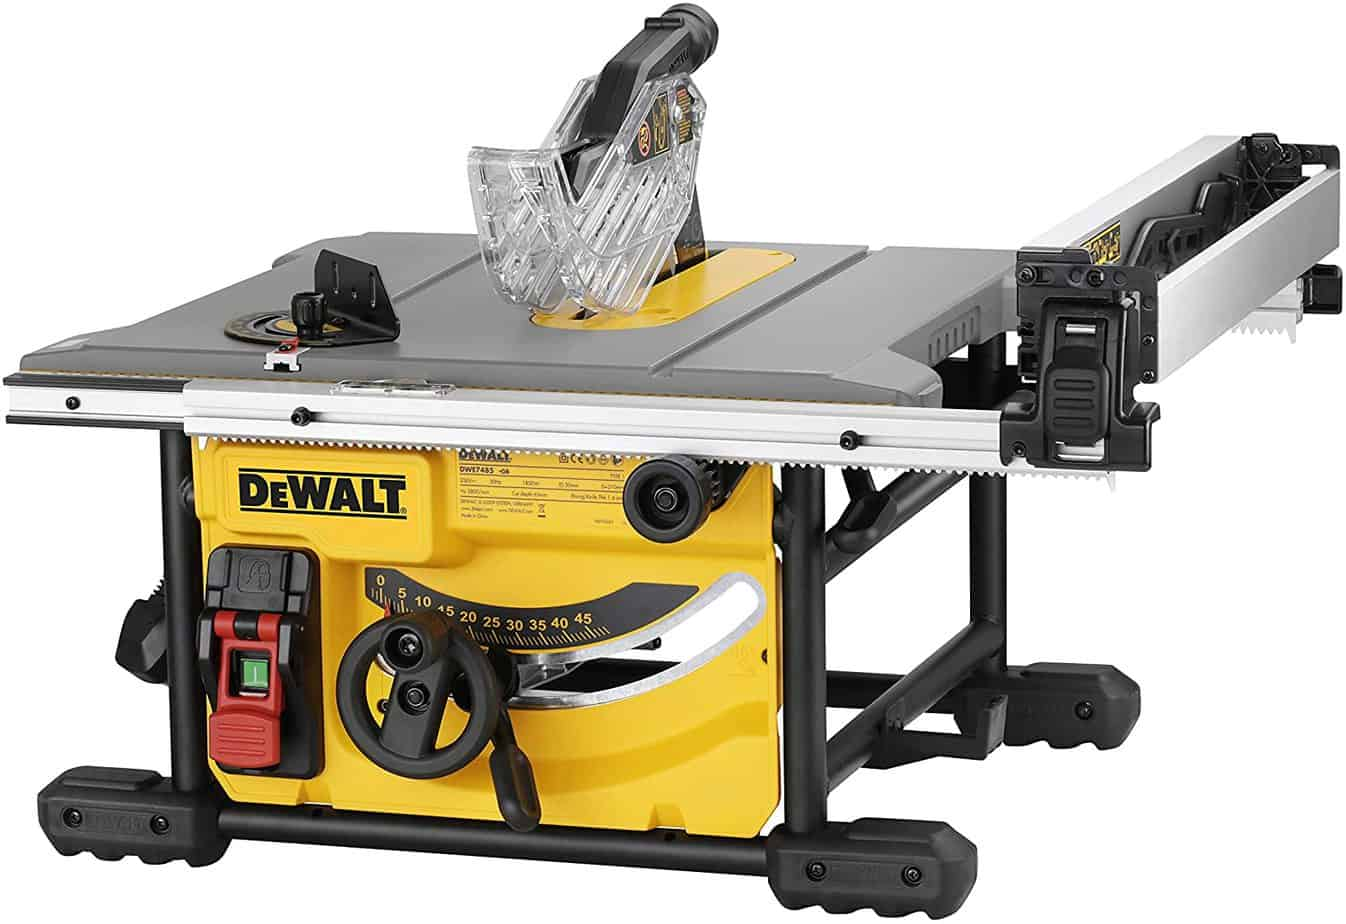 Bosch 6-6 Review: Is This Table Saw Powerful Enough? [6] -